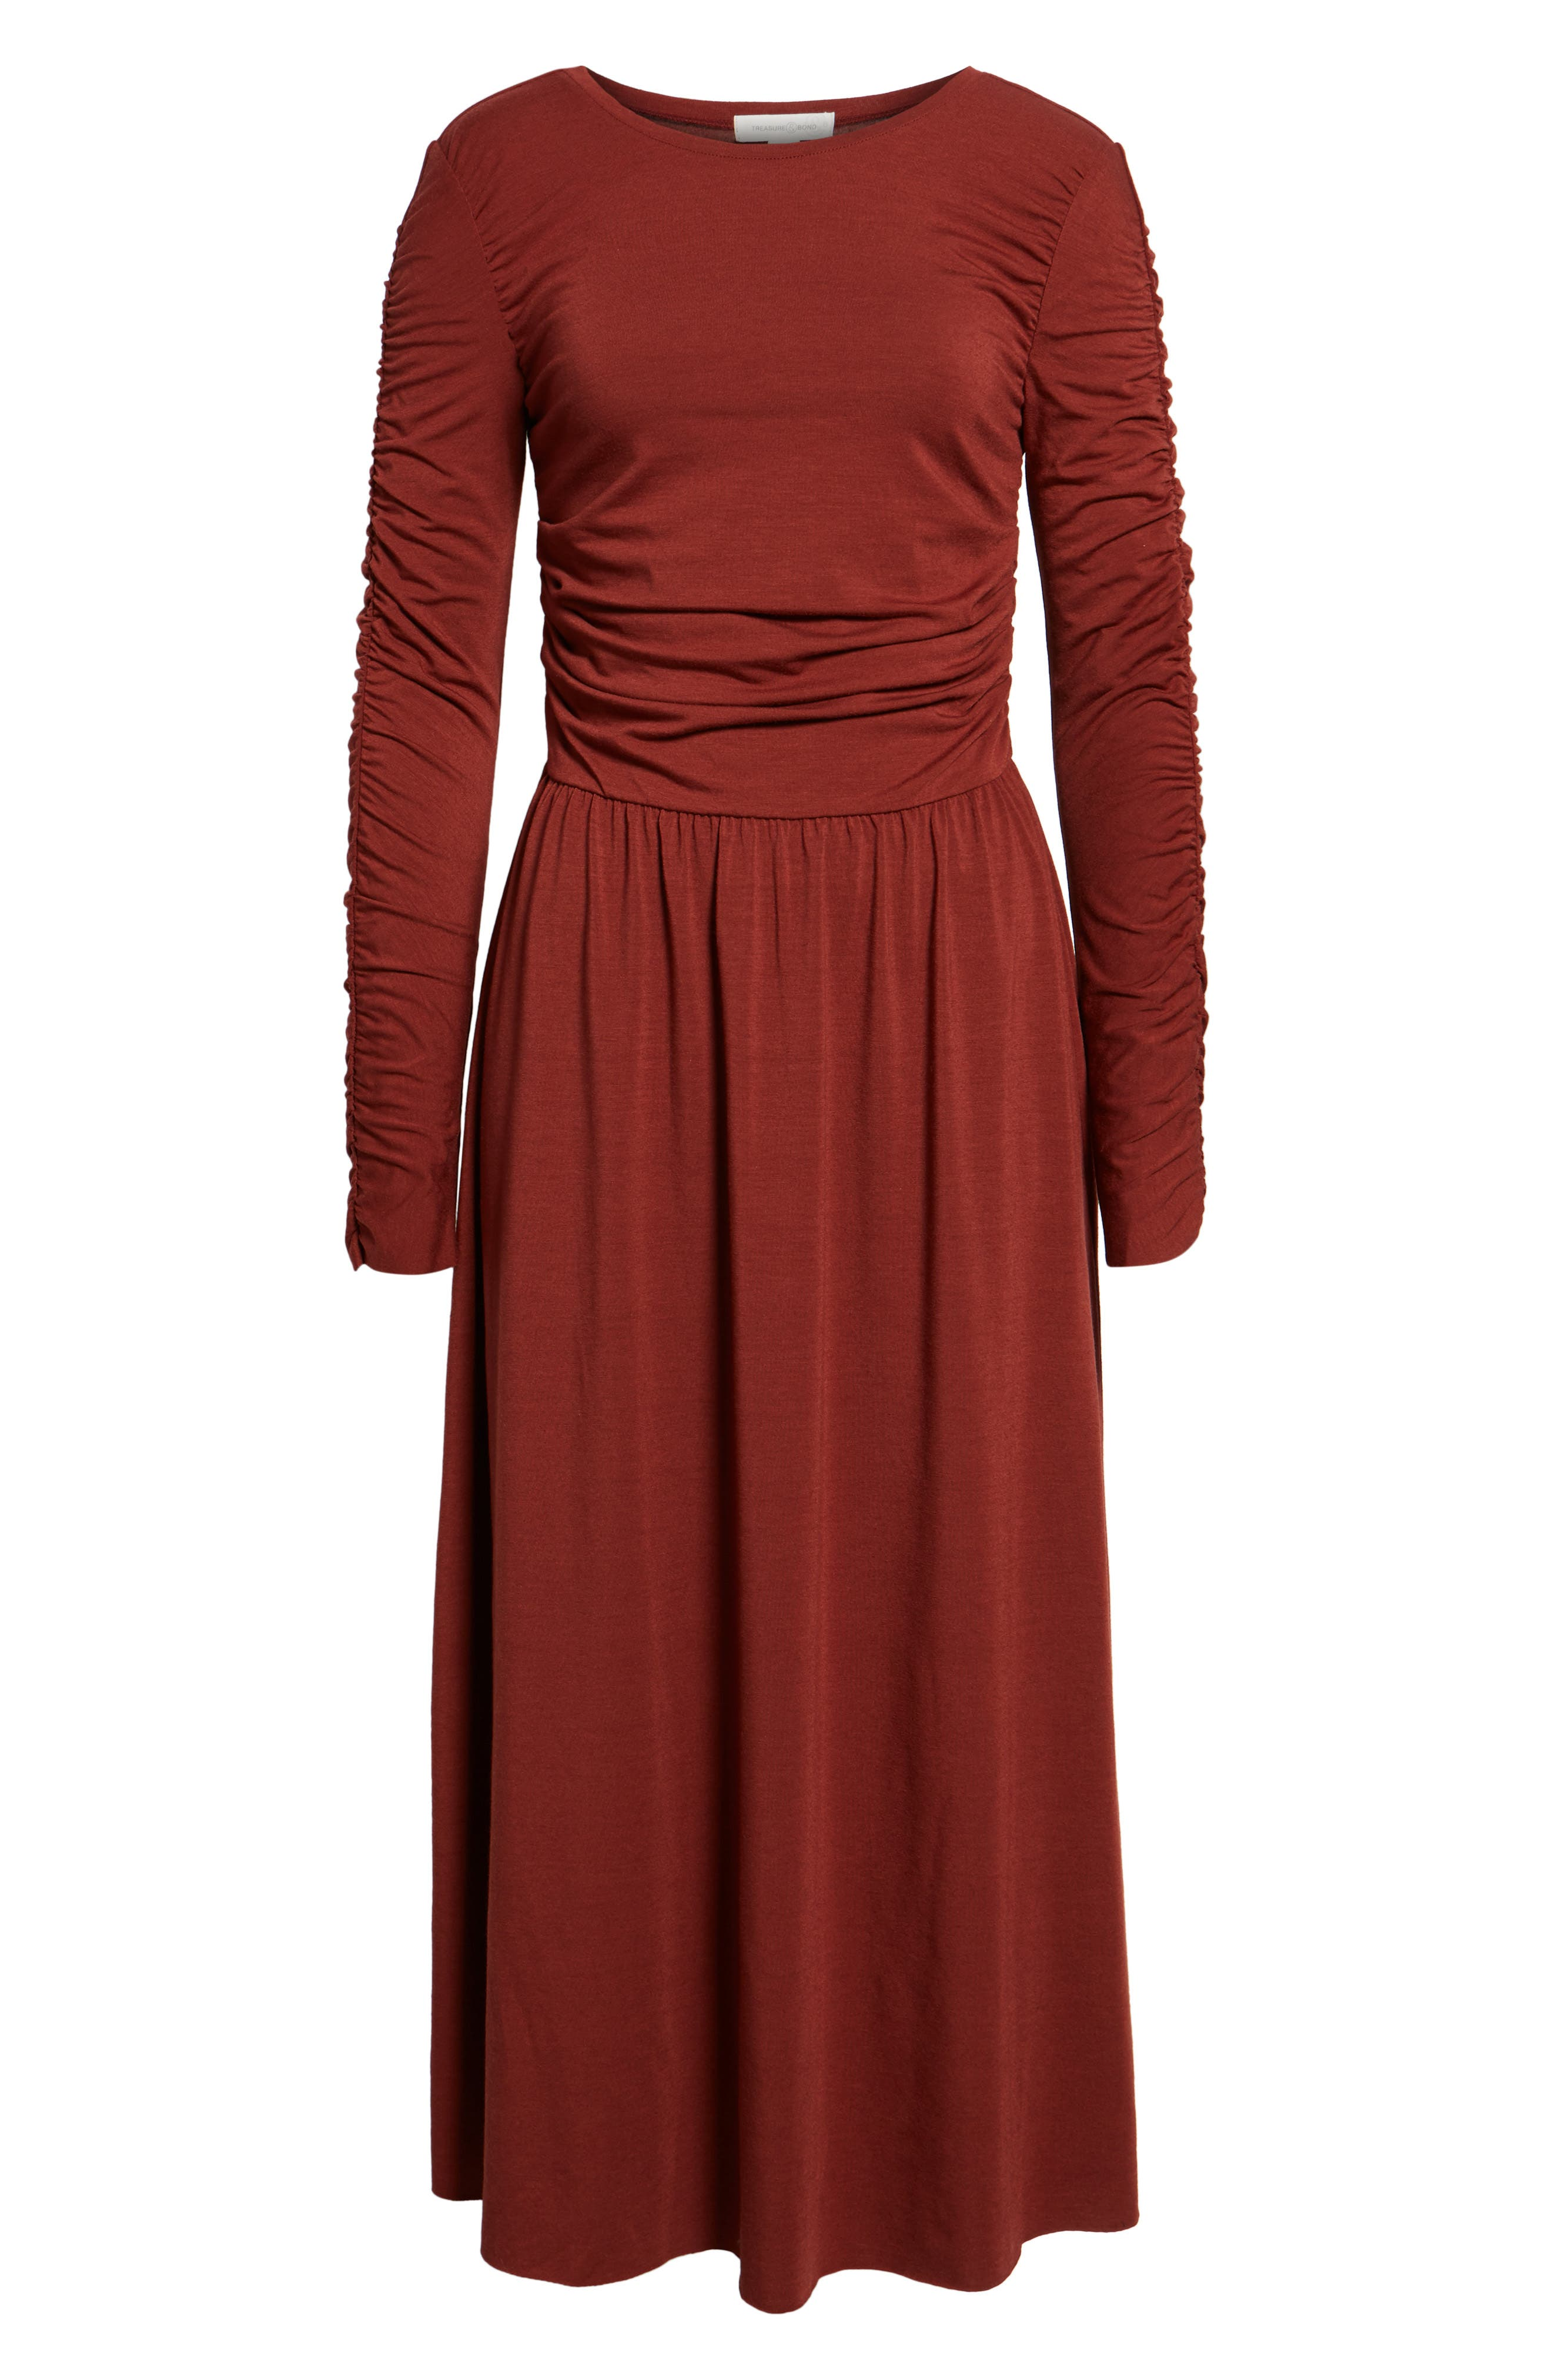 Ruched Jersey Knit Dress,                             Alternate thumbnail 6, color,                             200